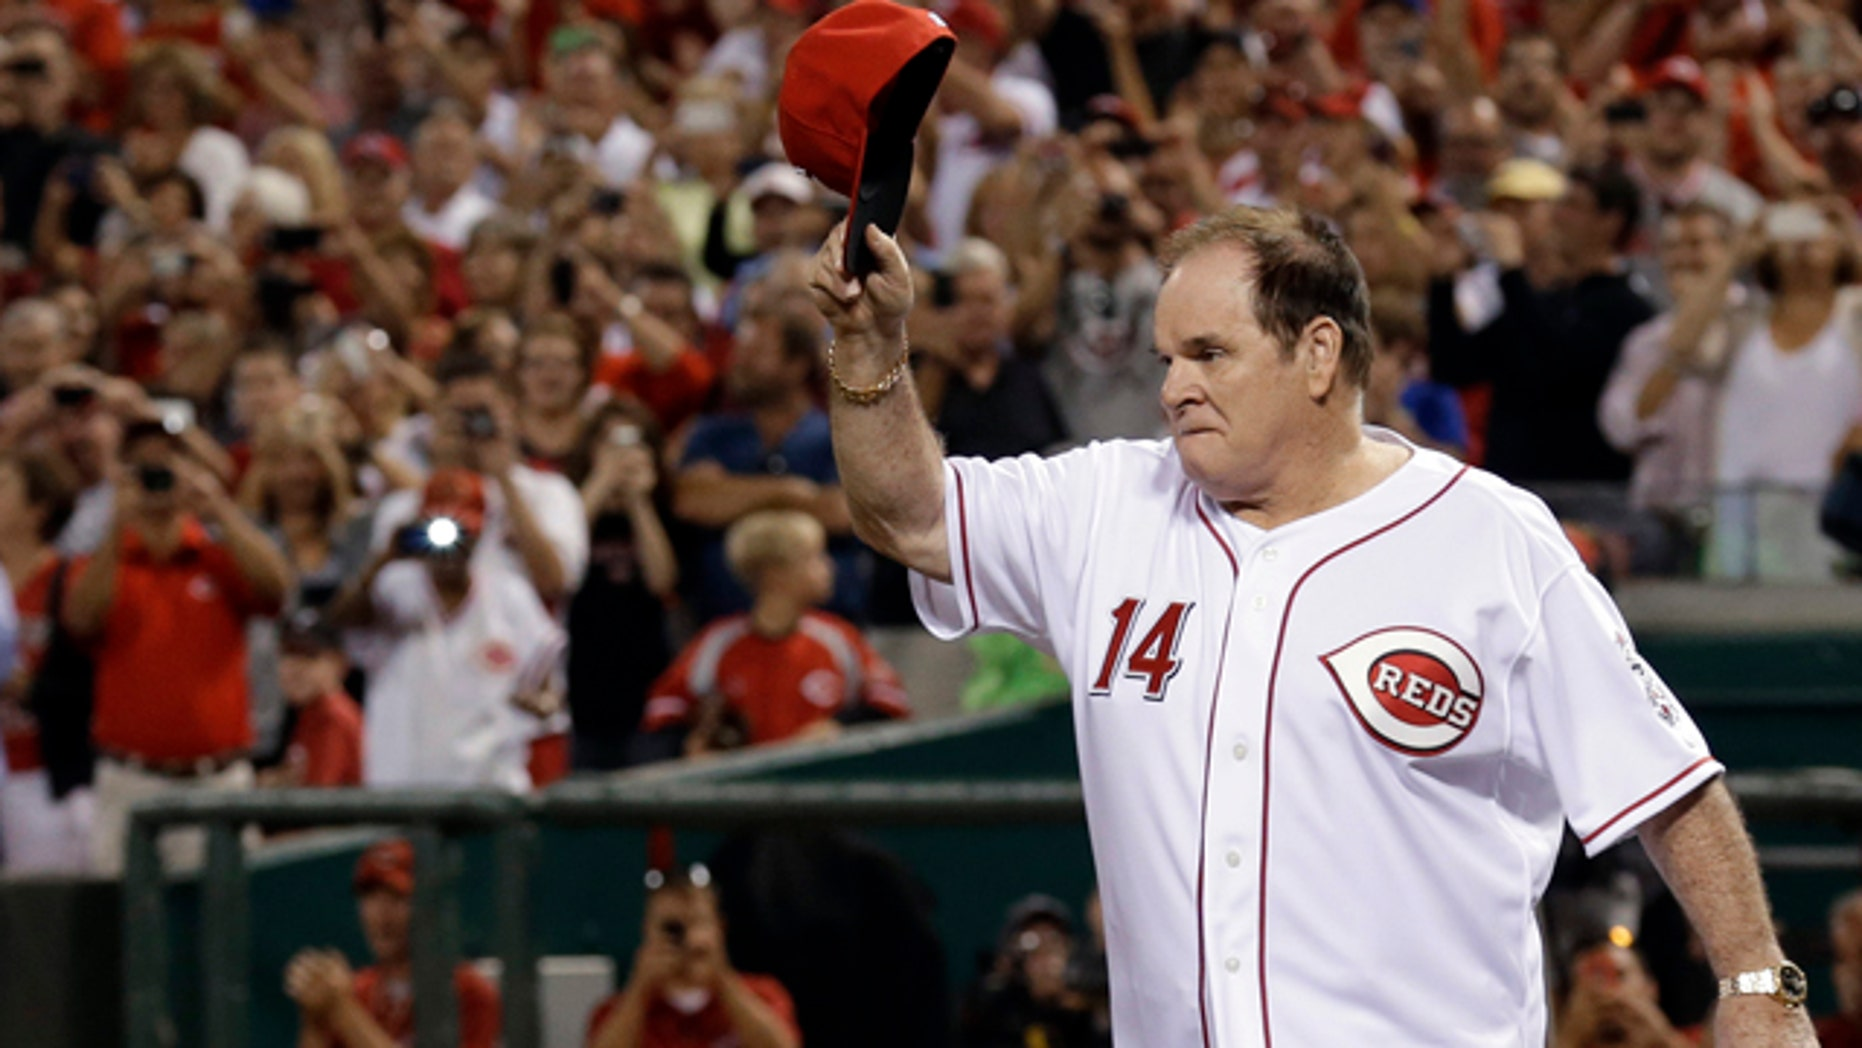 FILE - In this Sept. 6, 2013, file photo, former Cincinnati Reds great Pete Rose walks onto the field during ceremonies honoring the starting eight of the 1975-76 World Series-champion Reds, following a baseball game between the Reds and the Los Angeles Dodgers in Cincinnati. (AP Photo/Al Behrman, File)